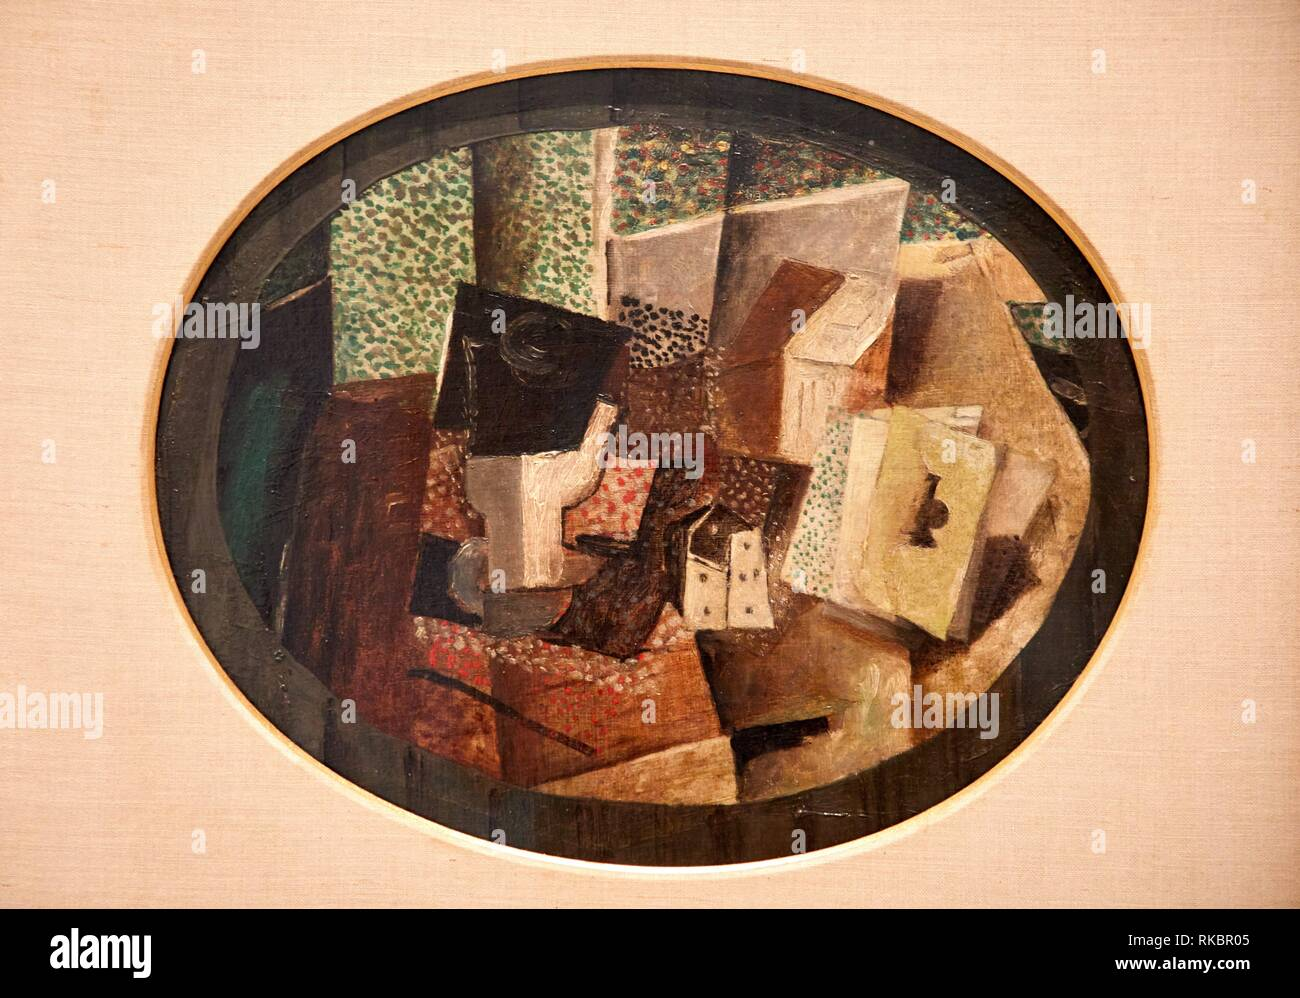 Cards and Dice, 1914, George Braque, Museo Nacional Centro de Arte Reina Sofia, Madrid, Spain, Europe - Stock Image